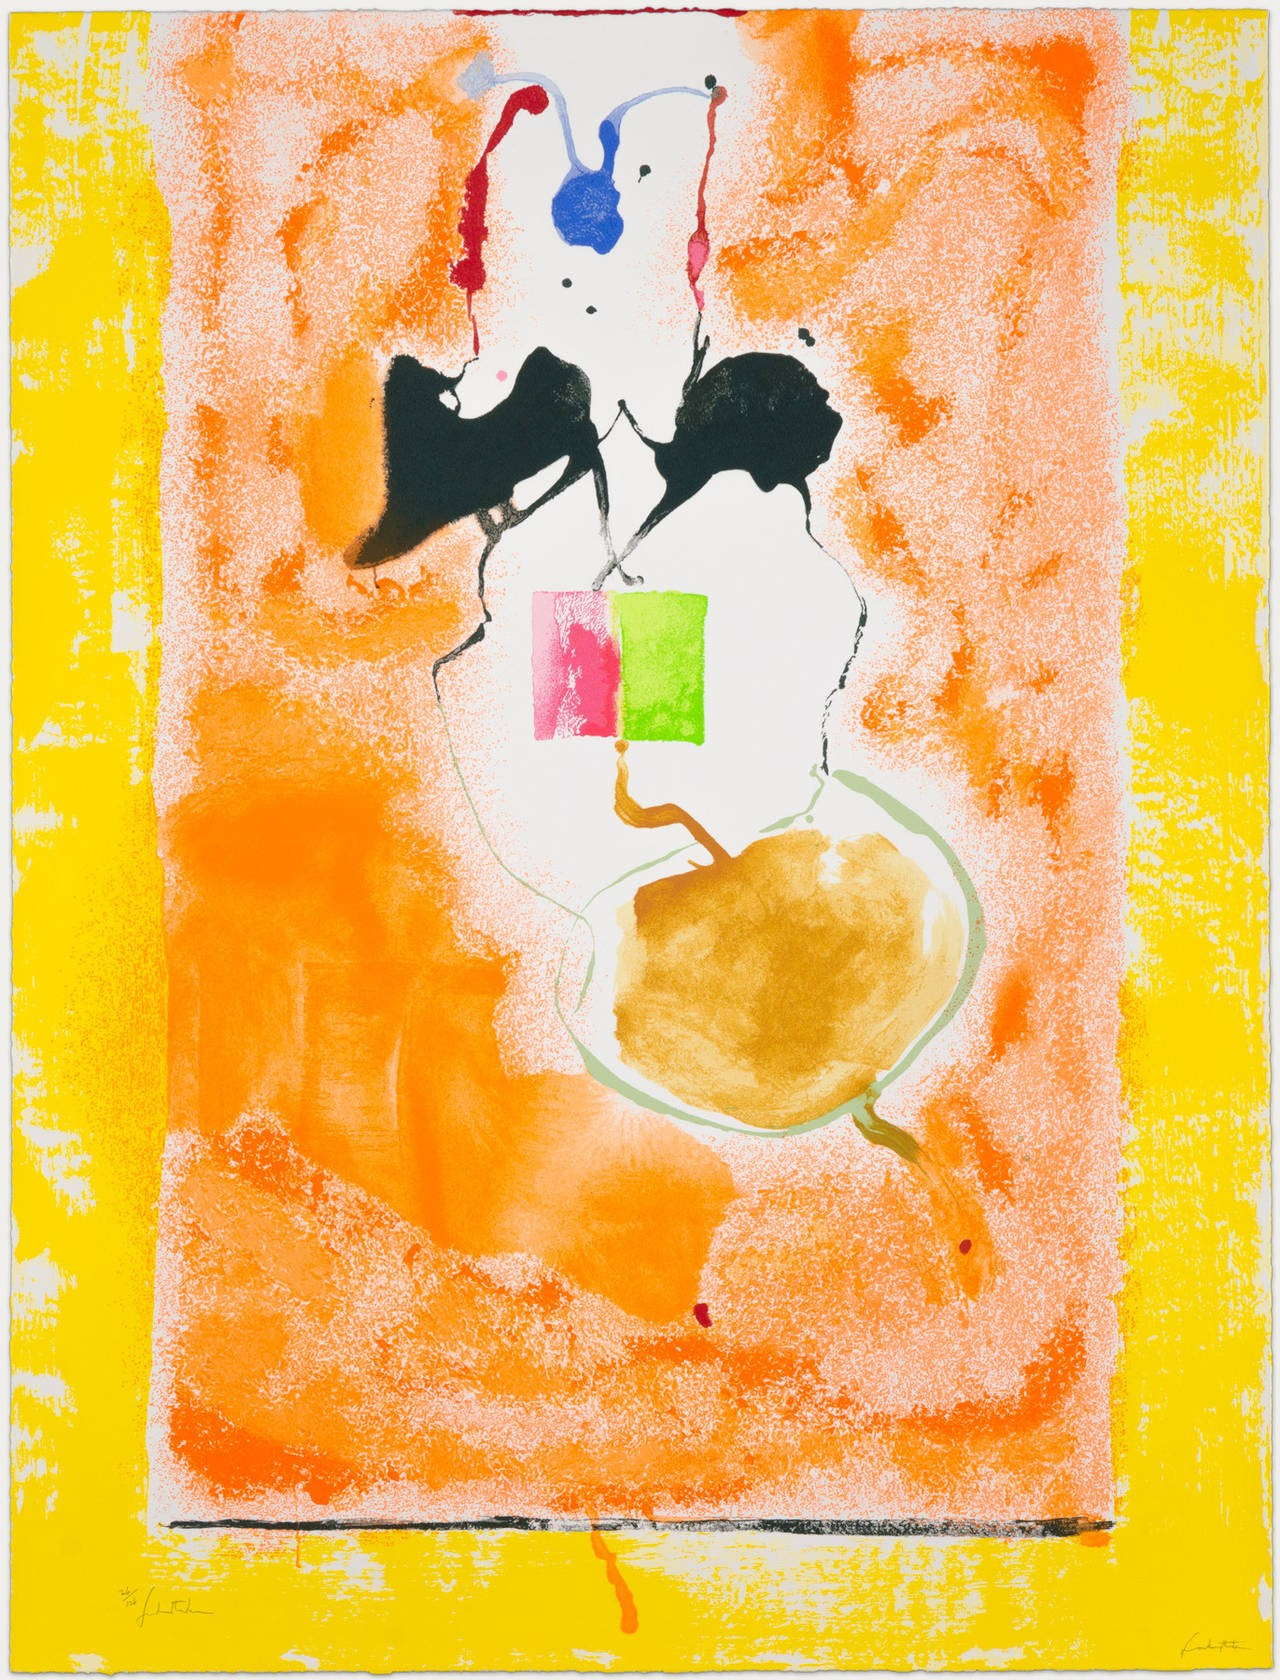 Helen Frankenthaler | Solar Imp | 2001 | Image of Artists' work.